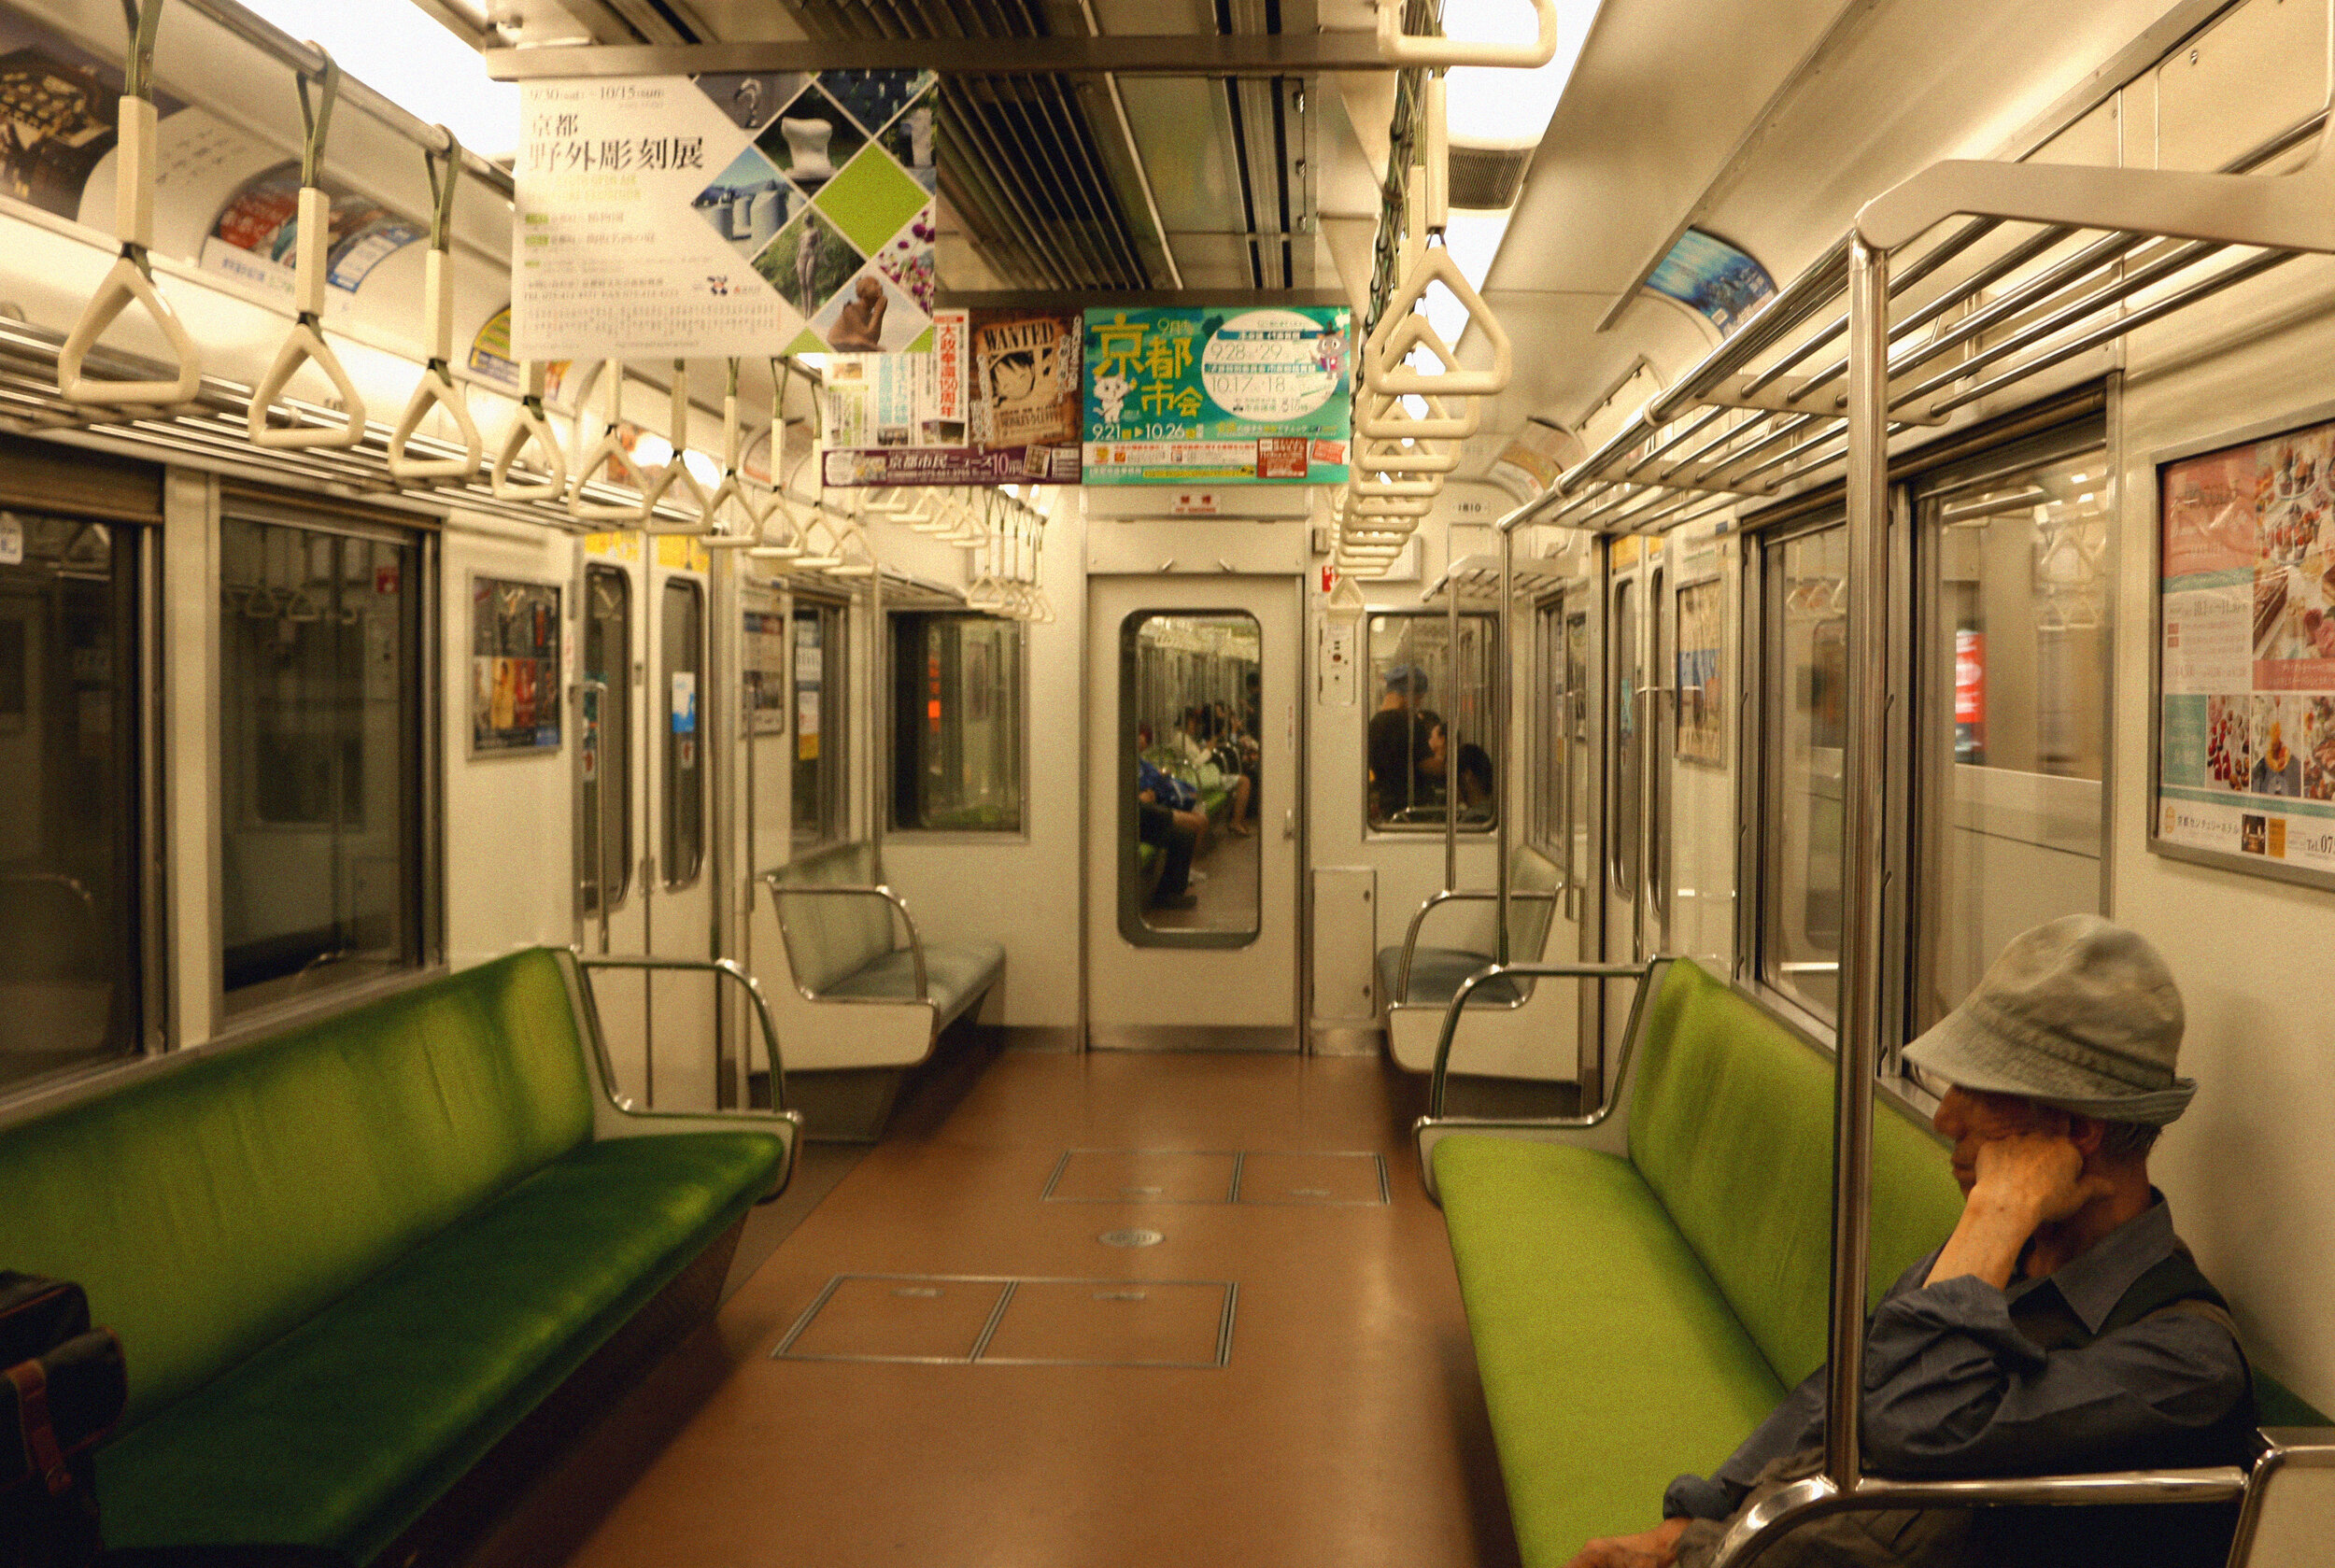 CLEANEST subways ever, hands down. If you are from NY, you know it's a no-no to get on the empty car, but in Japan they have the cleanest VELVET SEATS and the cars smell better than your dreams.